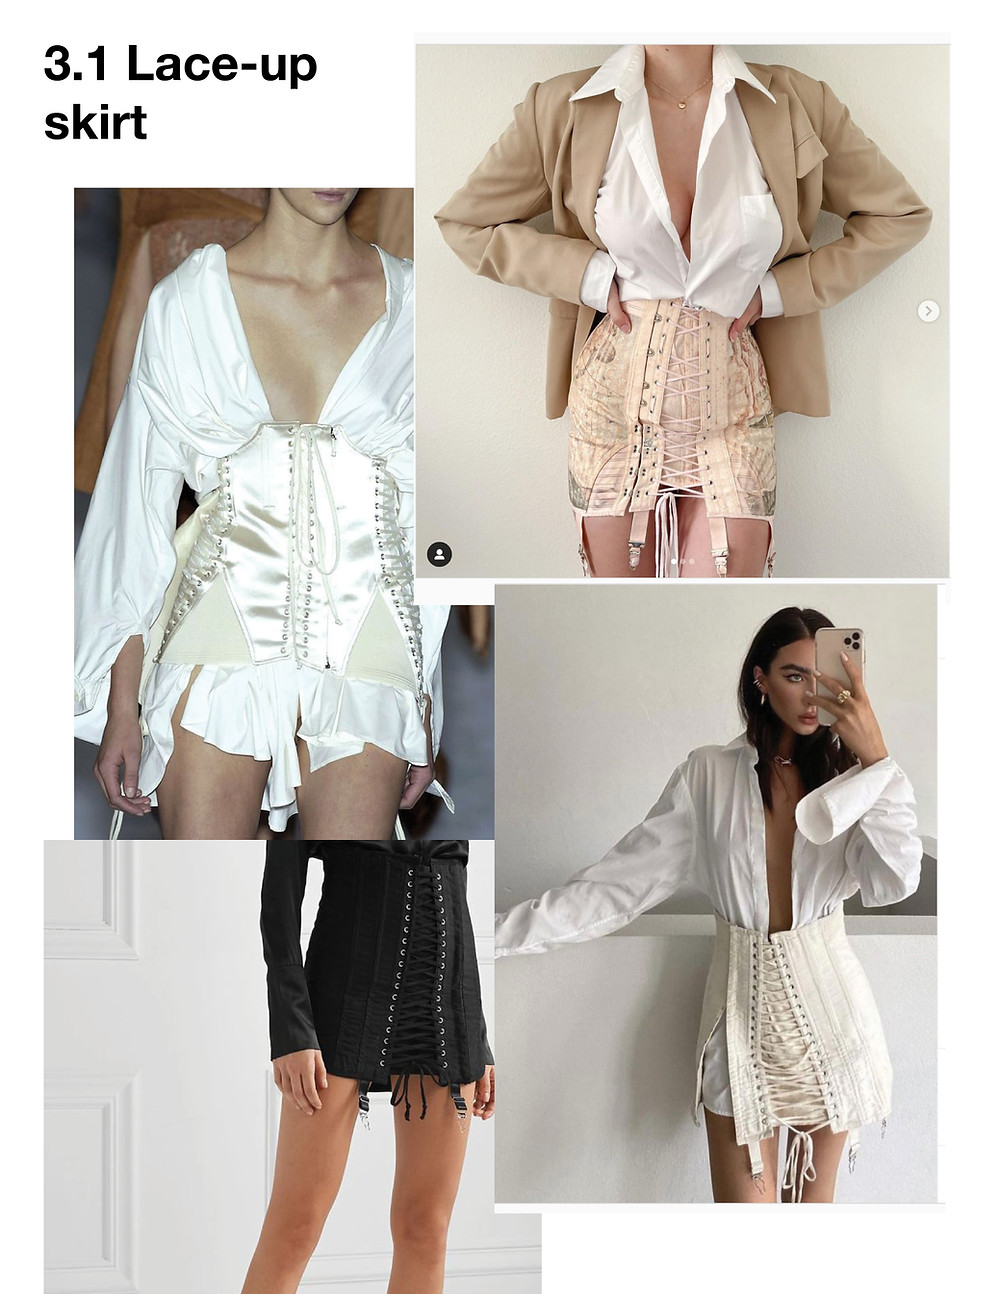 Fashion, Style, trendy tops for summer 2021, vintage corset outfit, lace-up skirt